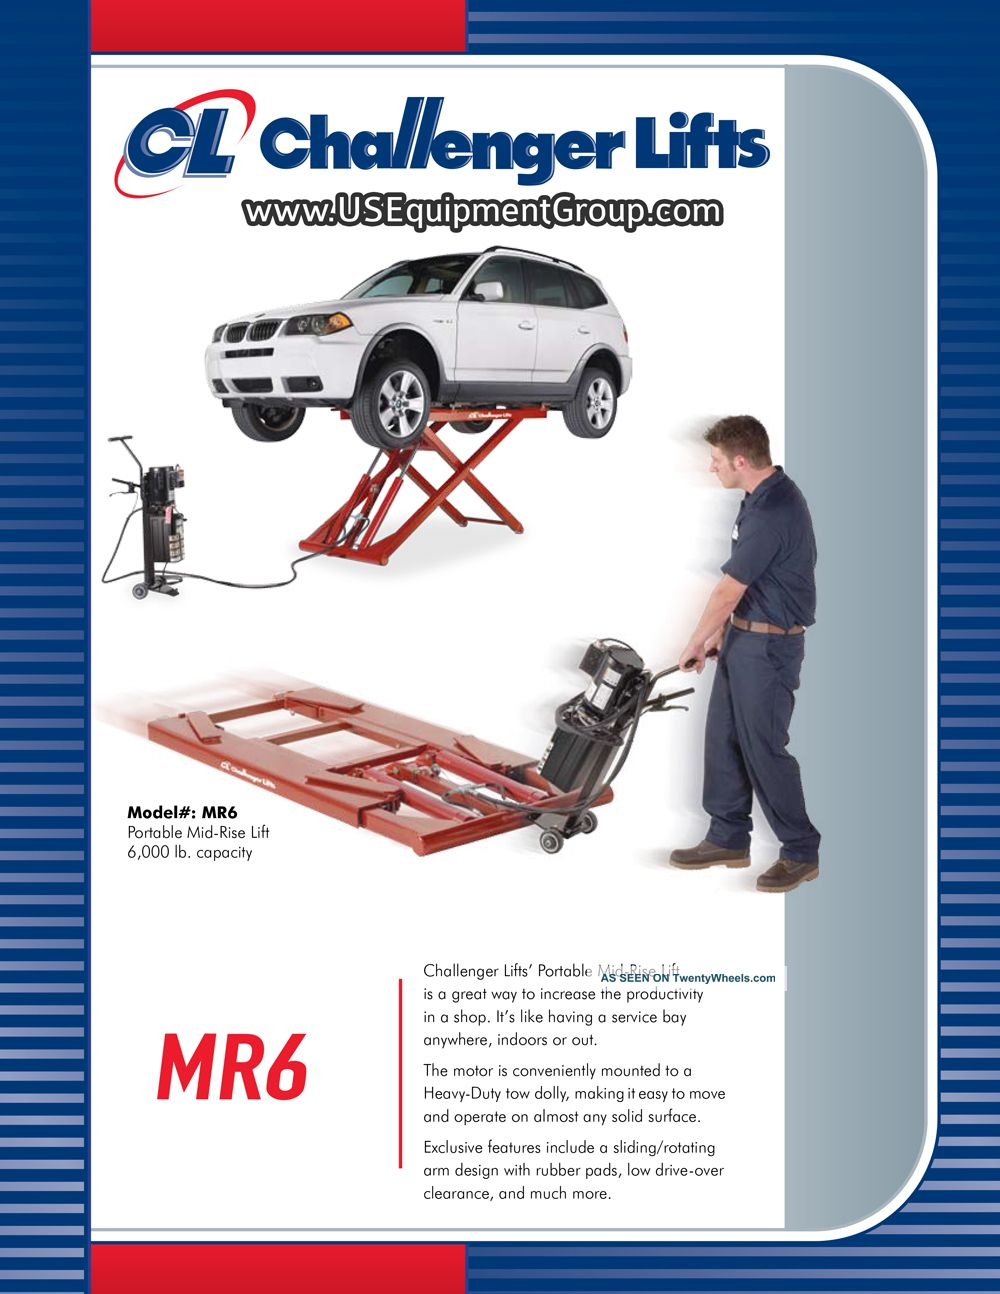 Challenger Mr6 6000 Lb Mid - Rise Portable Car Lift